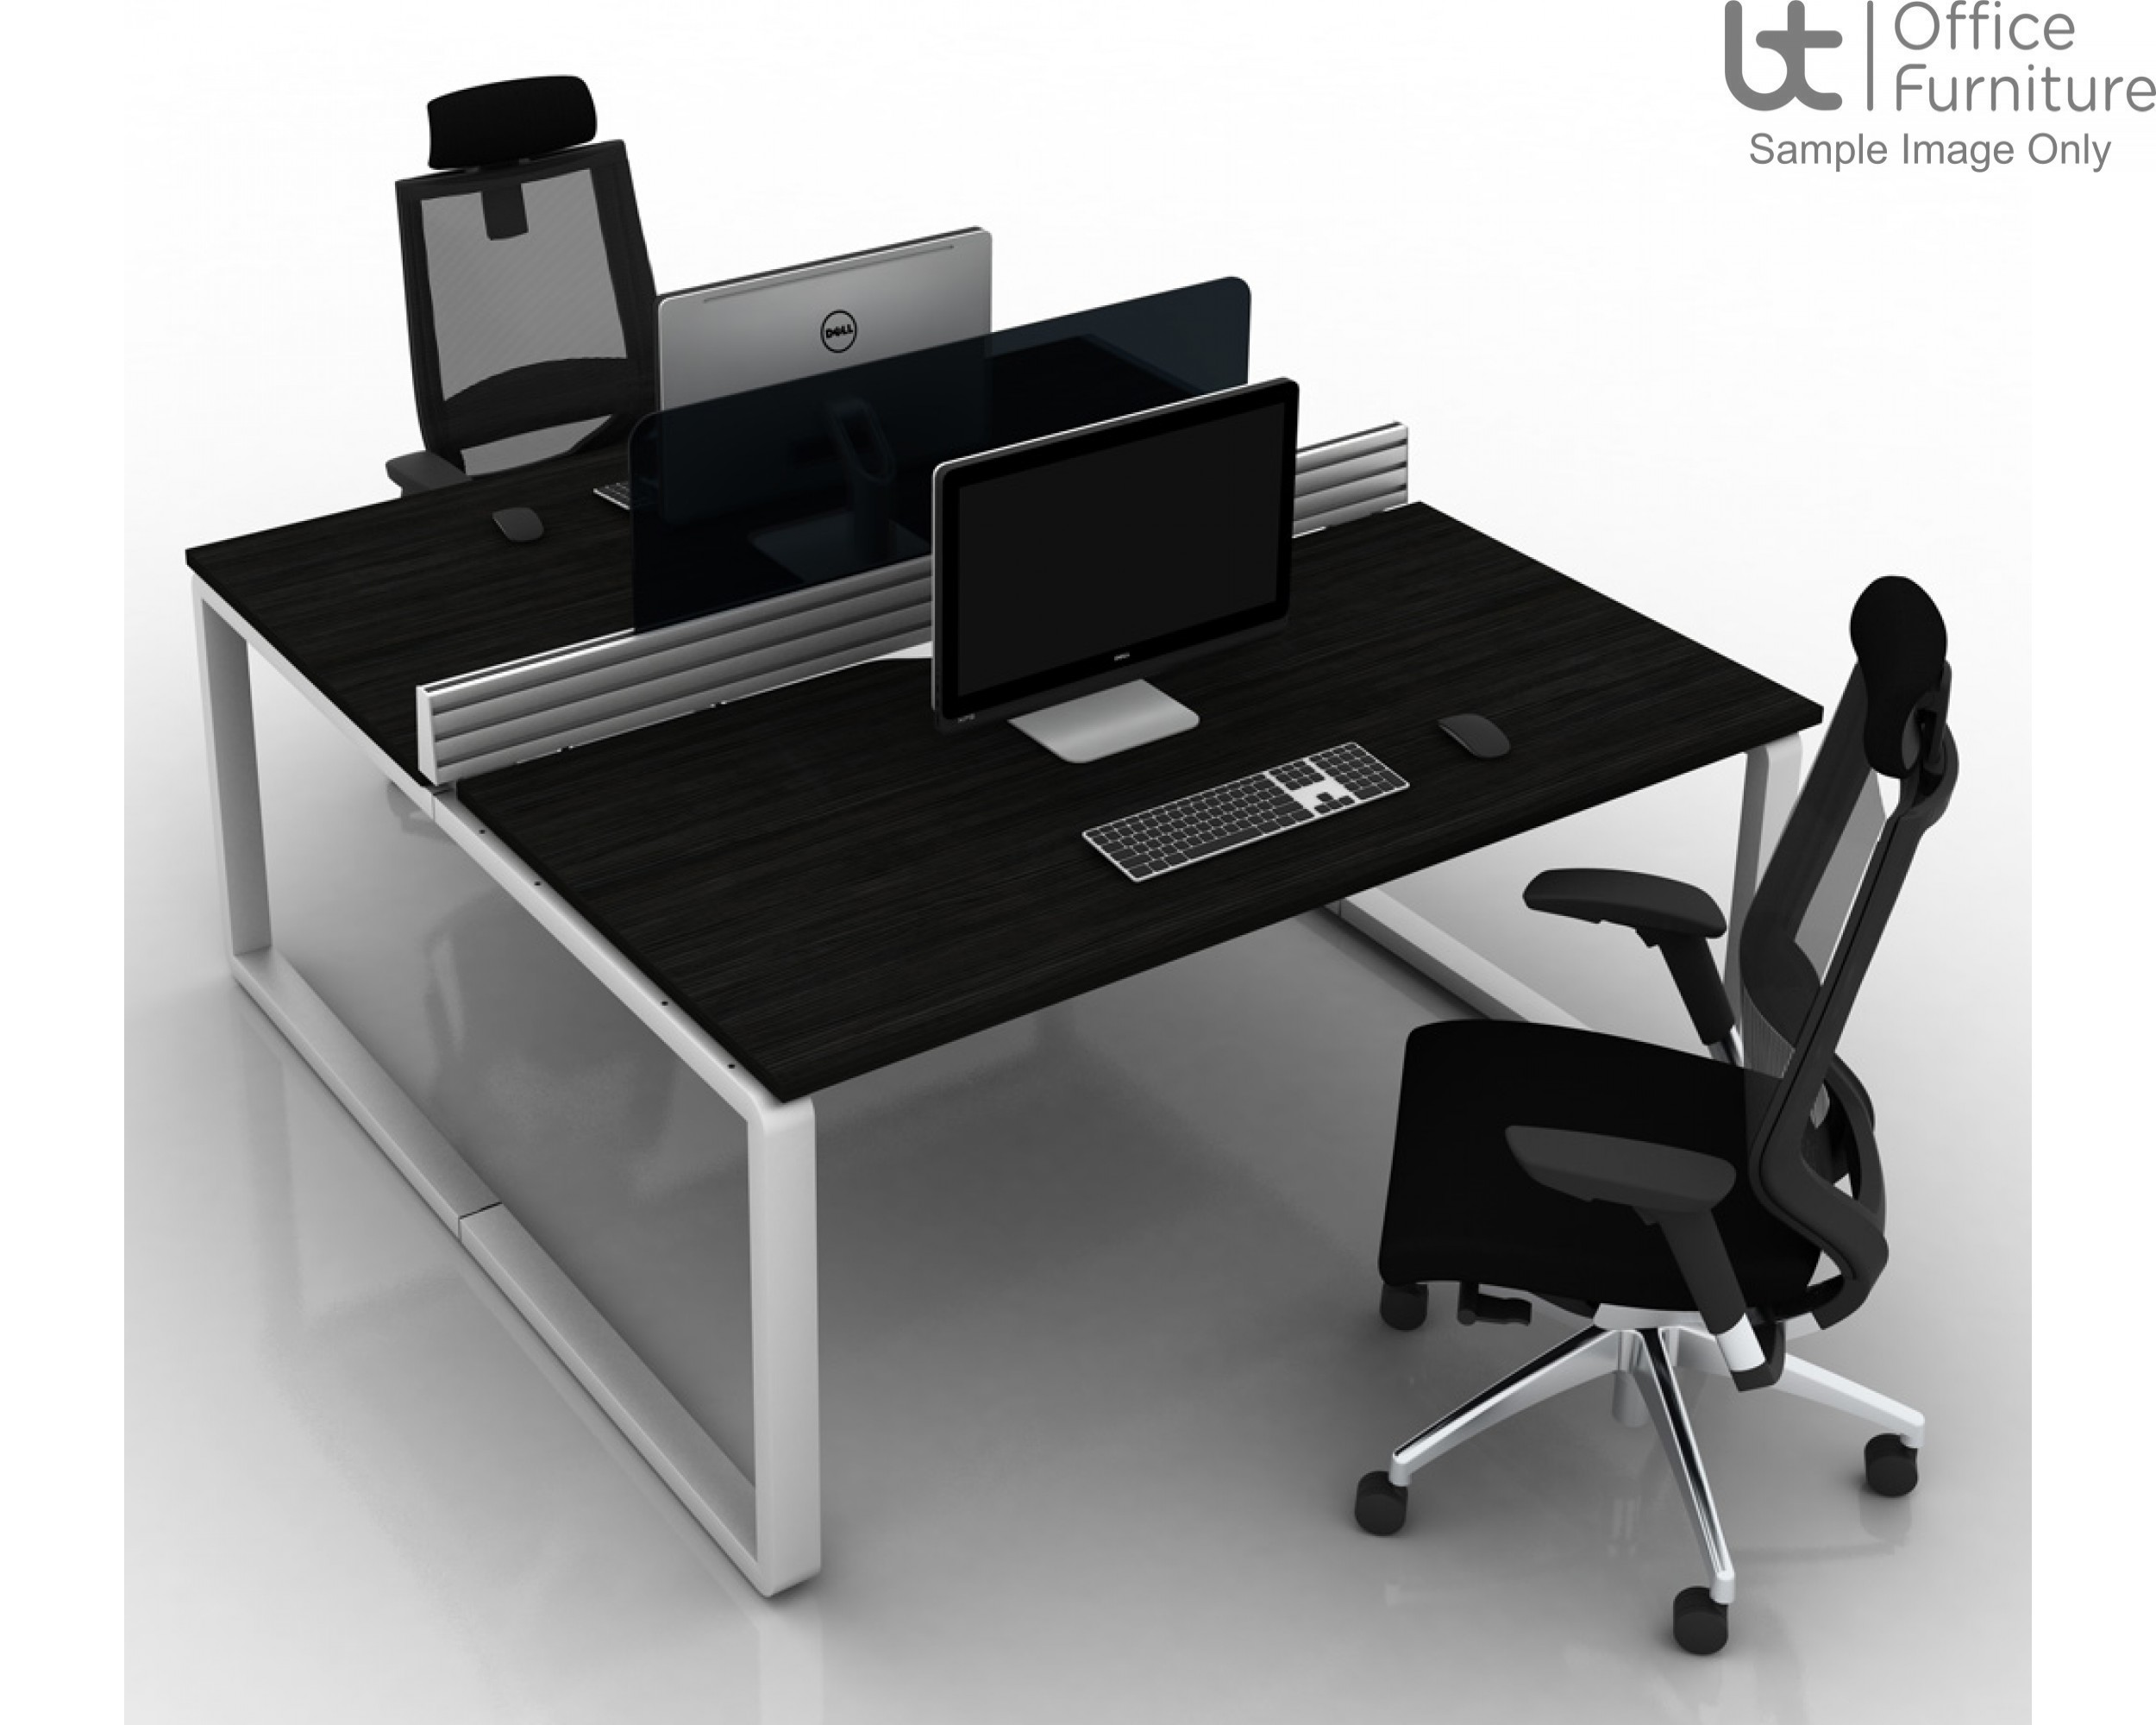 Arc Wave Desk 800-1000mm Deep - Right Hand Illustrated